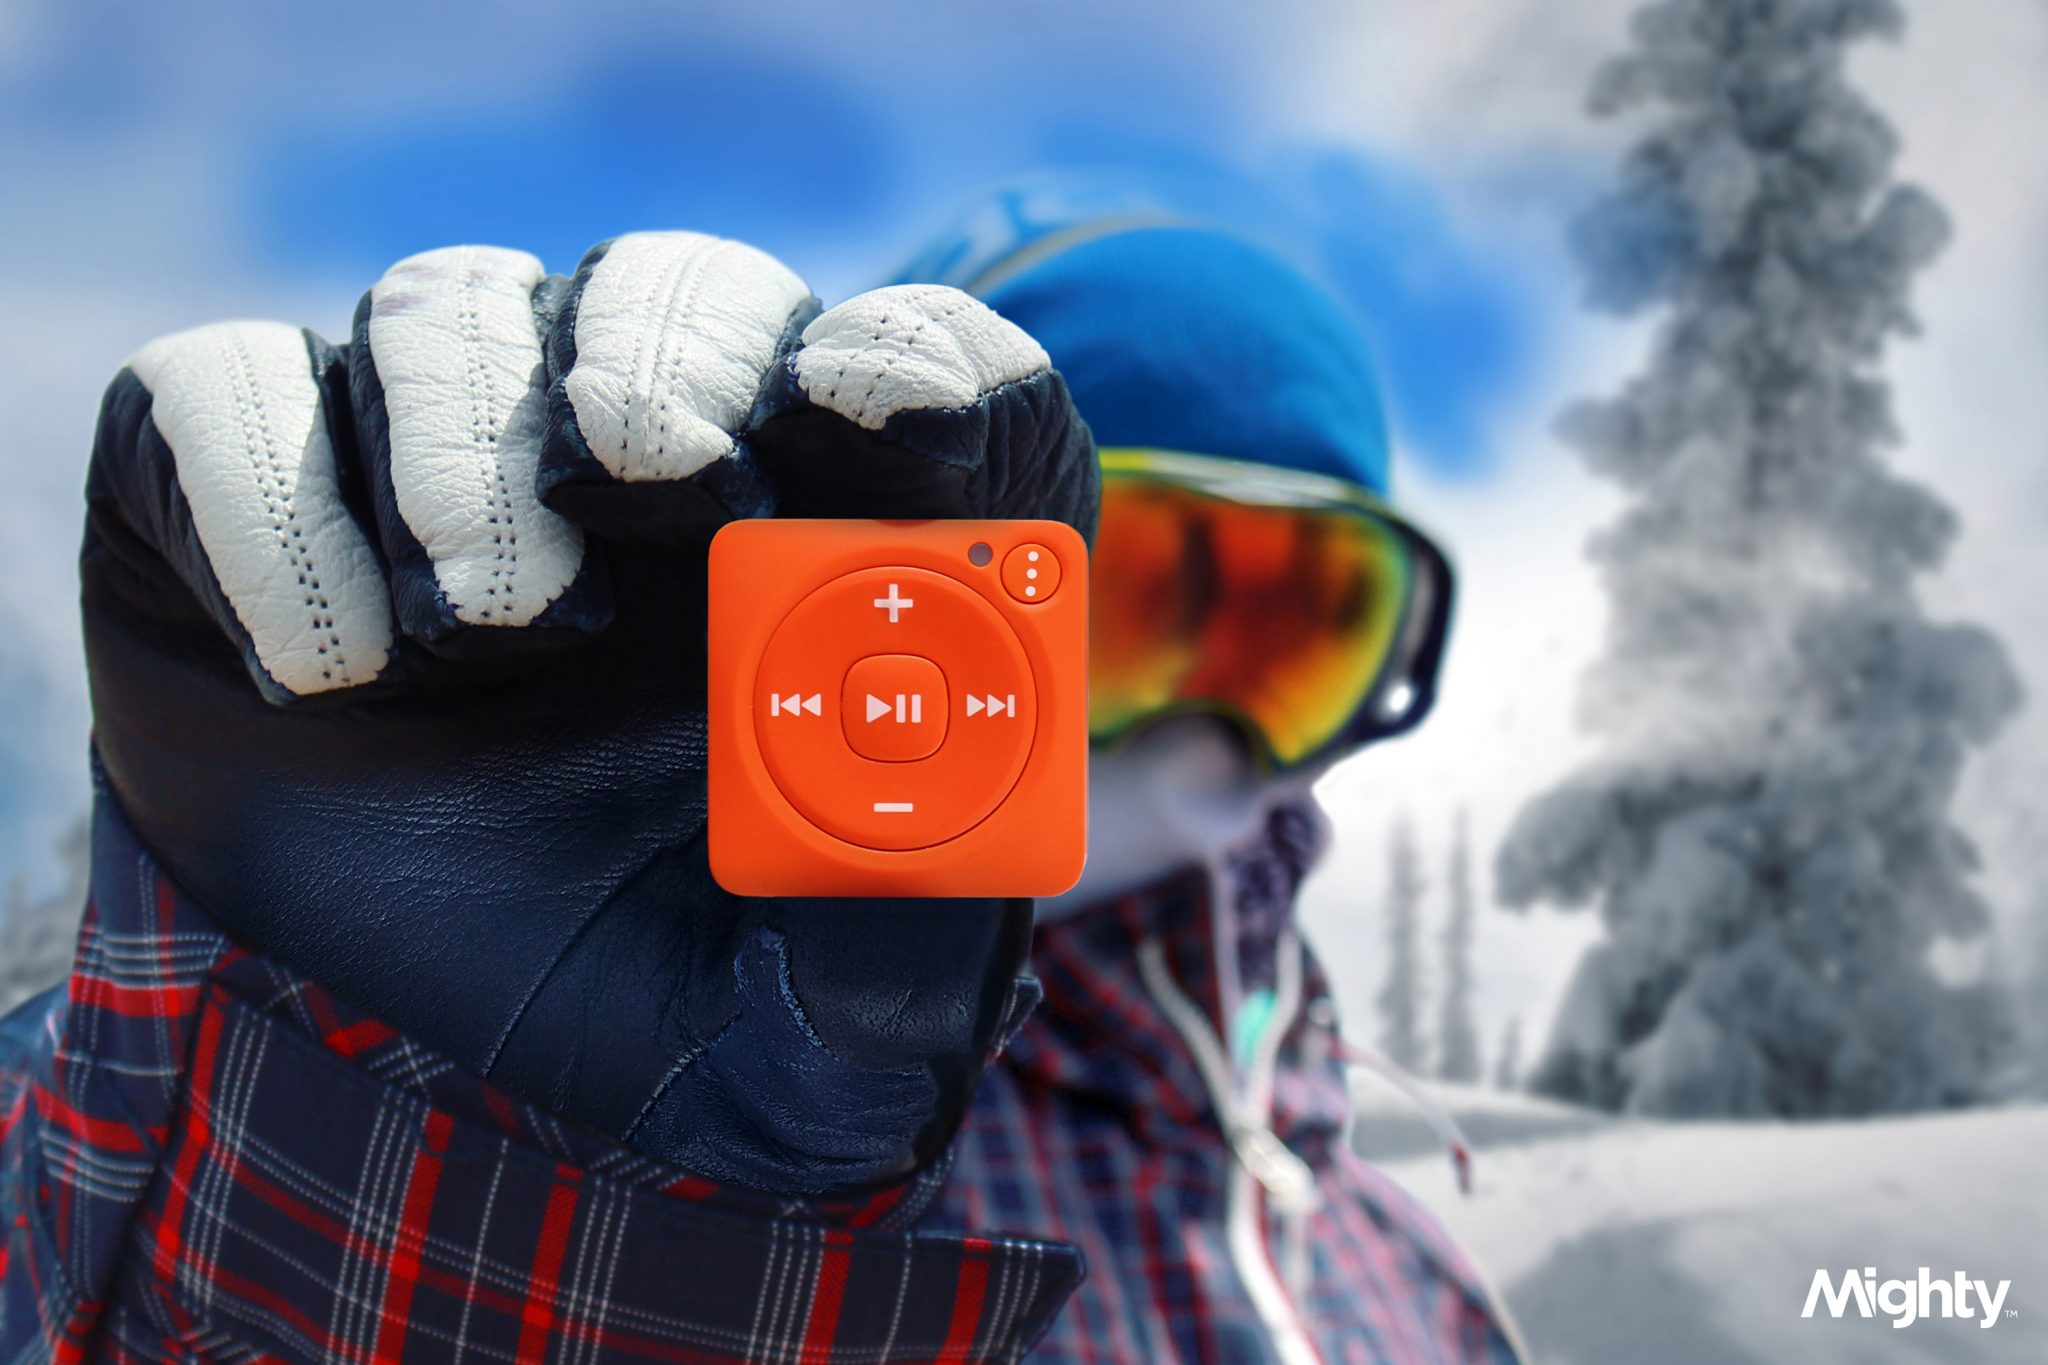 The Mighty — an iPod shuffle for Spotify 16